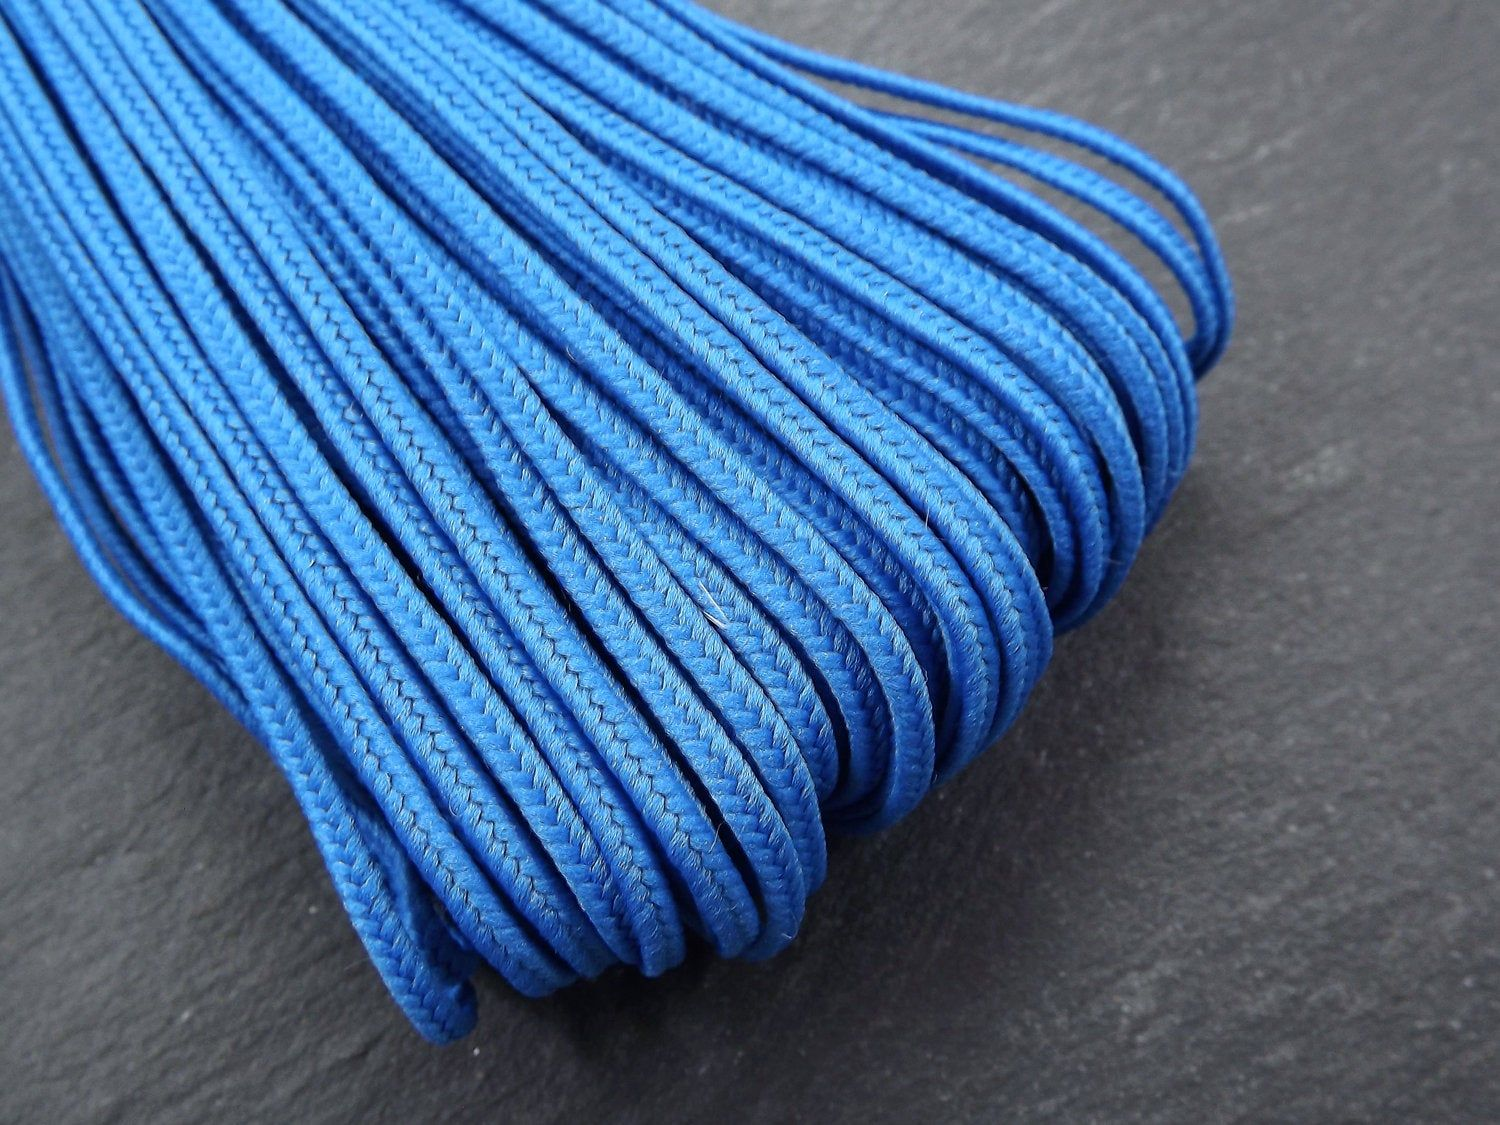 2mm Cobalt Blue Soutache Rayon Braided Cord Beading Sewing,Quilting Trimming String 10 Yards